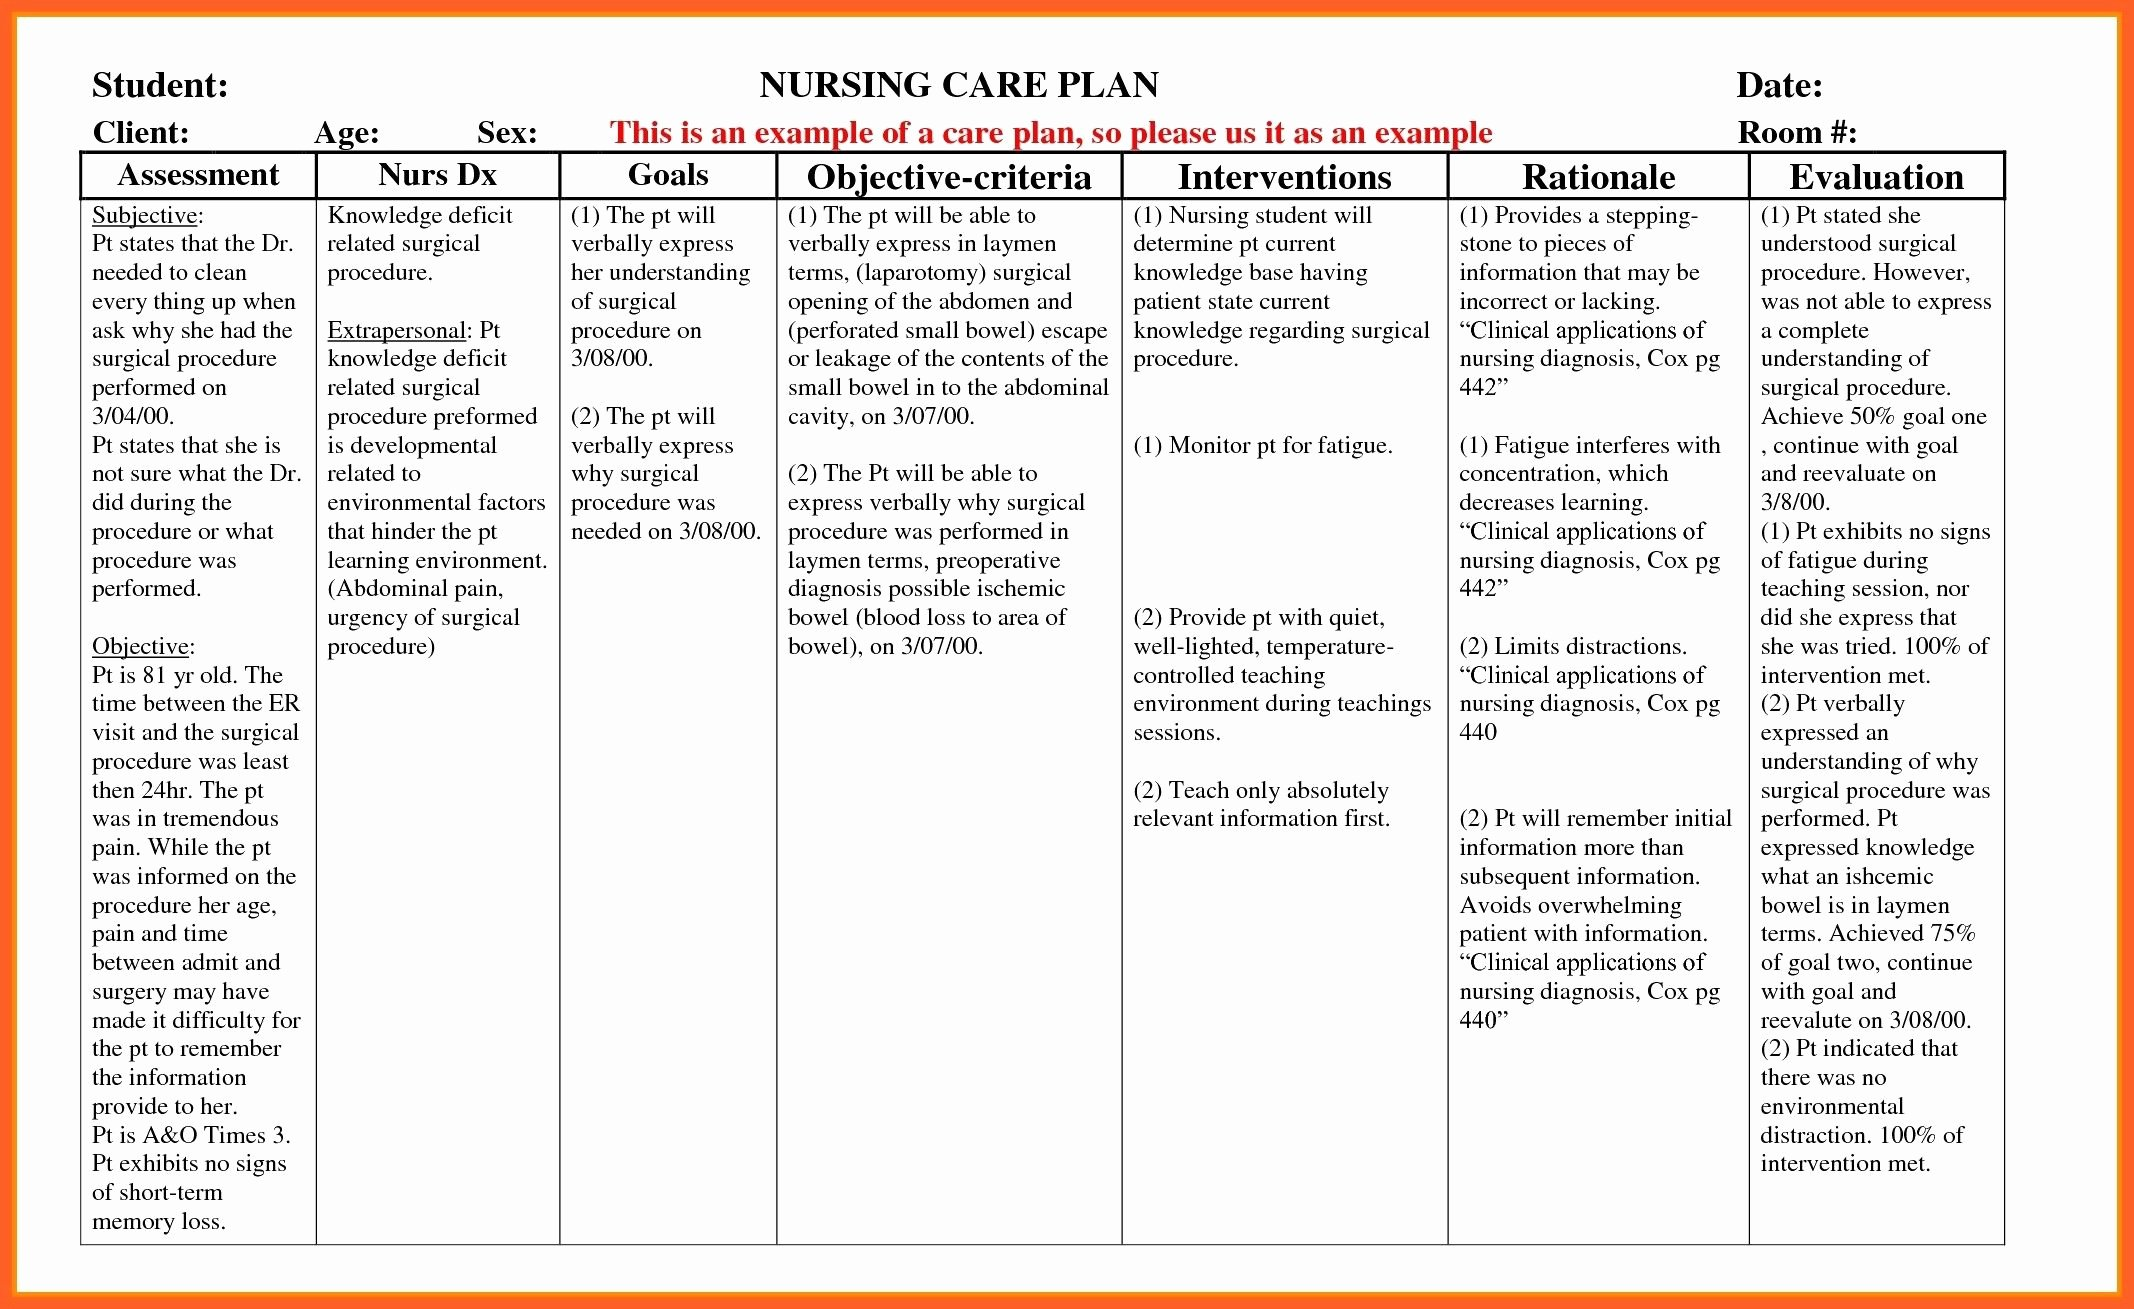 Nursing Teaching Plan Template Fresh Example Care Plan Template for Elderly Nursing Home Delighted Pink Dress